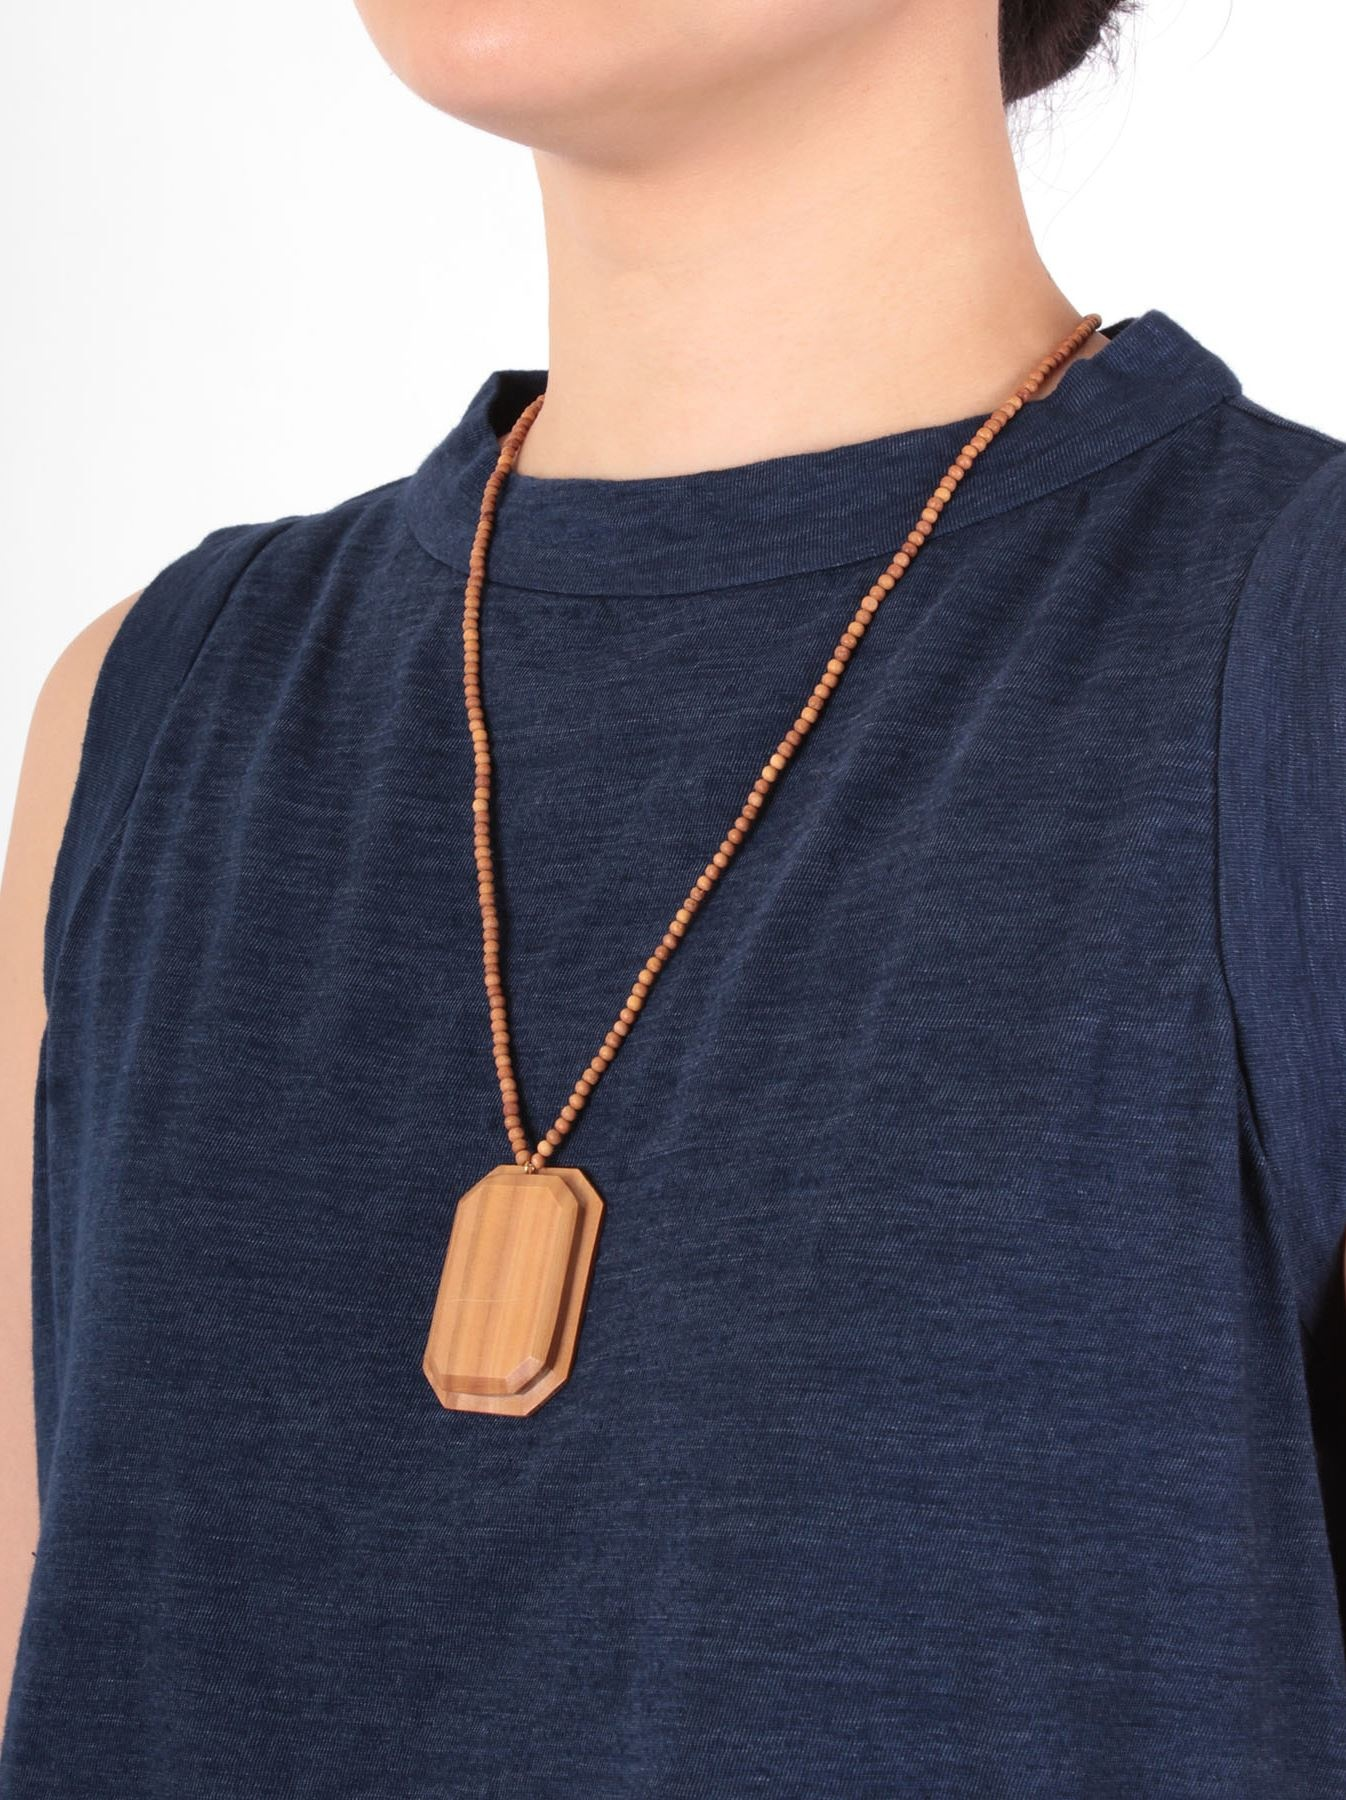 WH Sandalwood Octagon Necklace-2